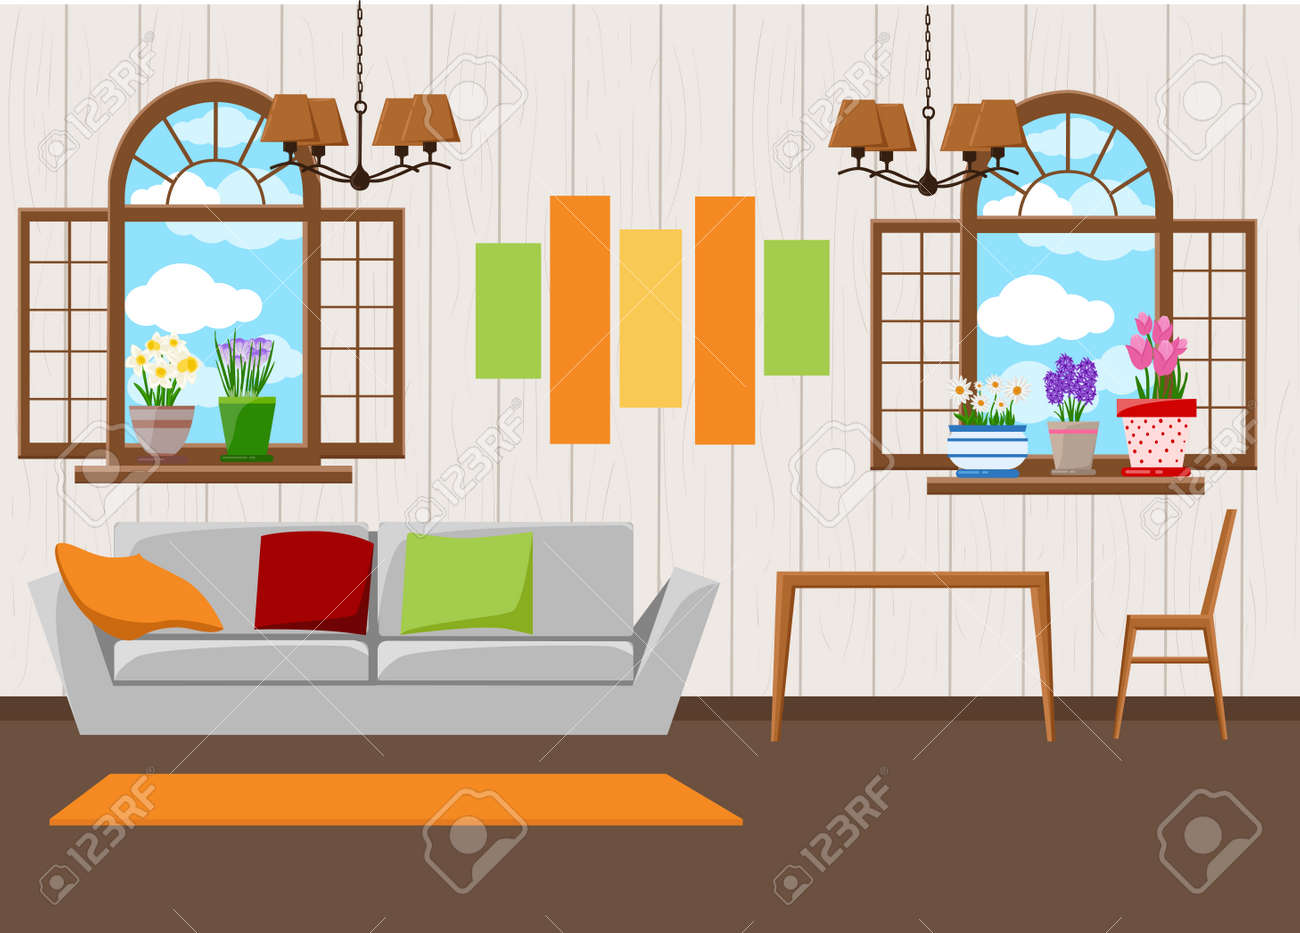 Beautiful design elements illustration of living room furniture in mid century modern style stock vector